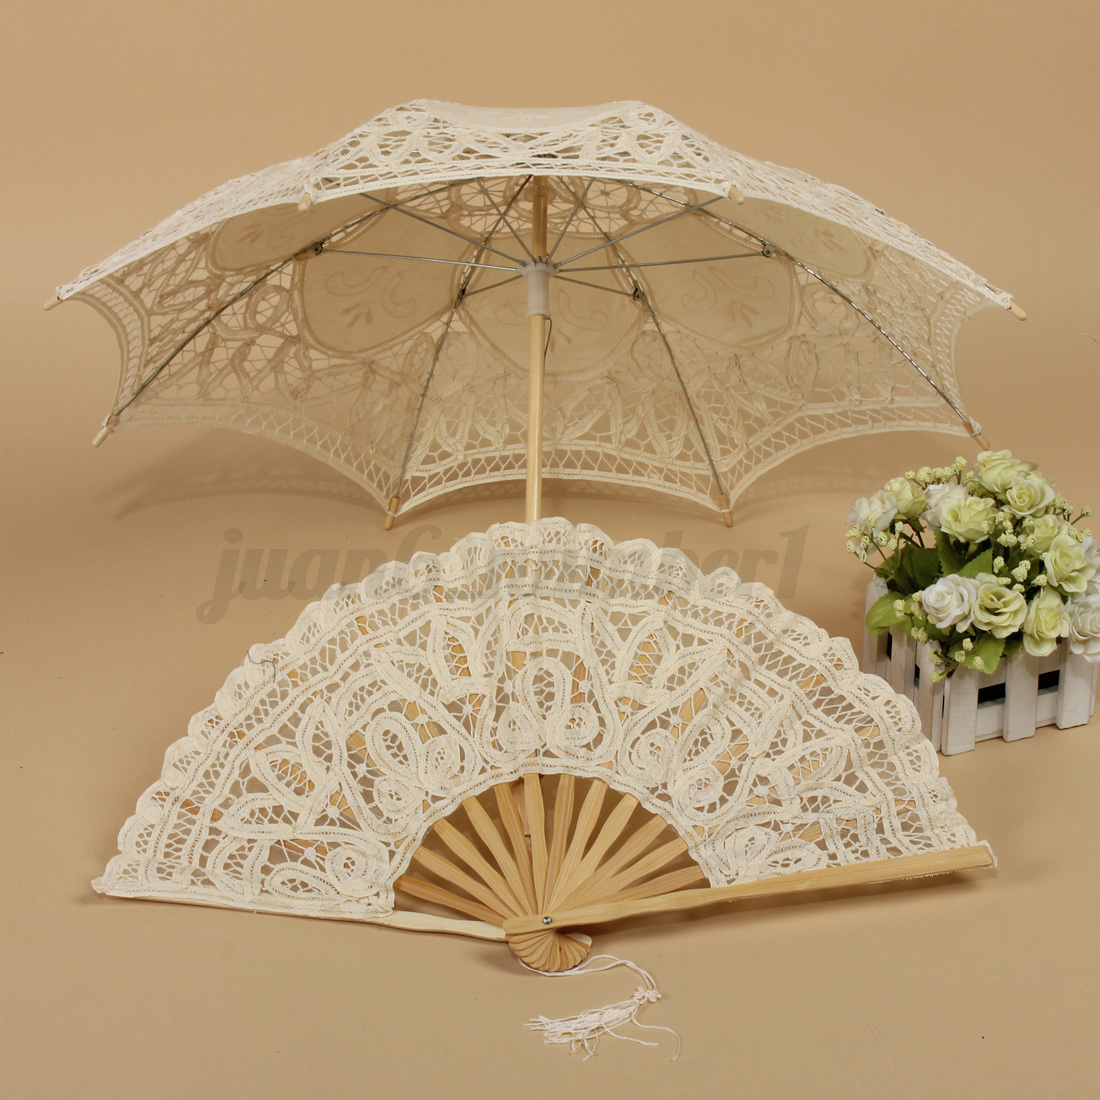 Handmade-Cotton-Lace-Parasol-Umbrella-Hand-Fan-For-Bridal-Wedding-Bridal-Party